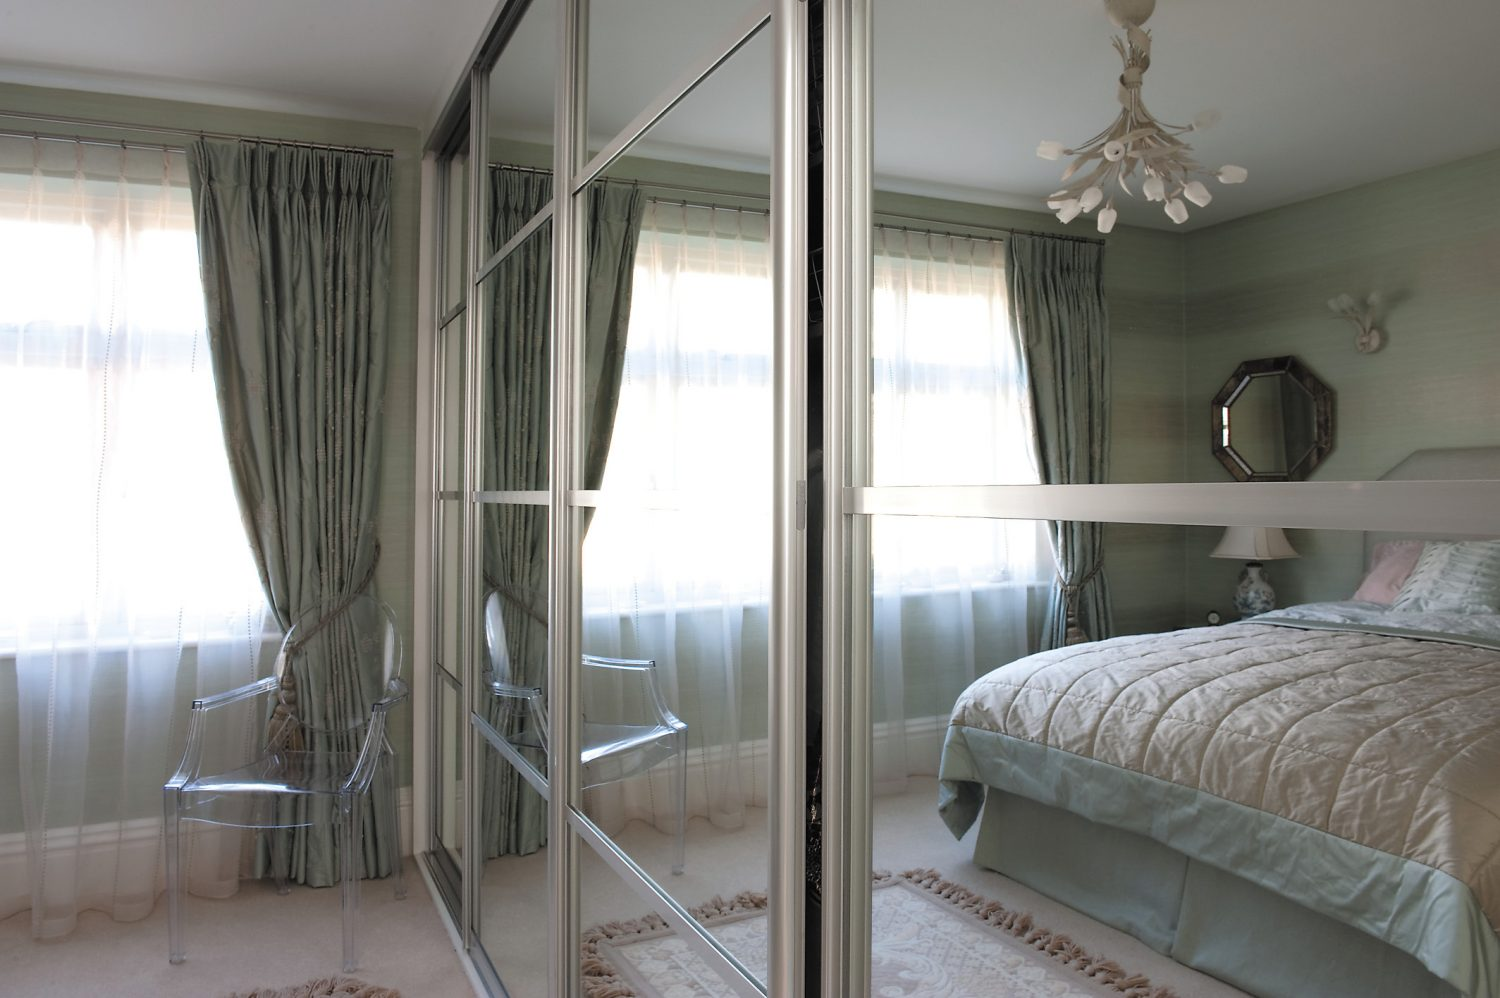 """In the guest bedroom, one wall is comprised of built-in wardrobes with sliding mirrored doors that Jean says were built for them """"in record time"""" by Sliderobes of Aylesford"""